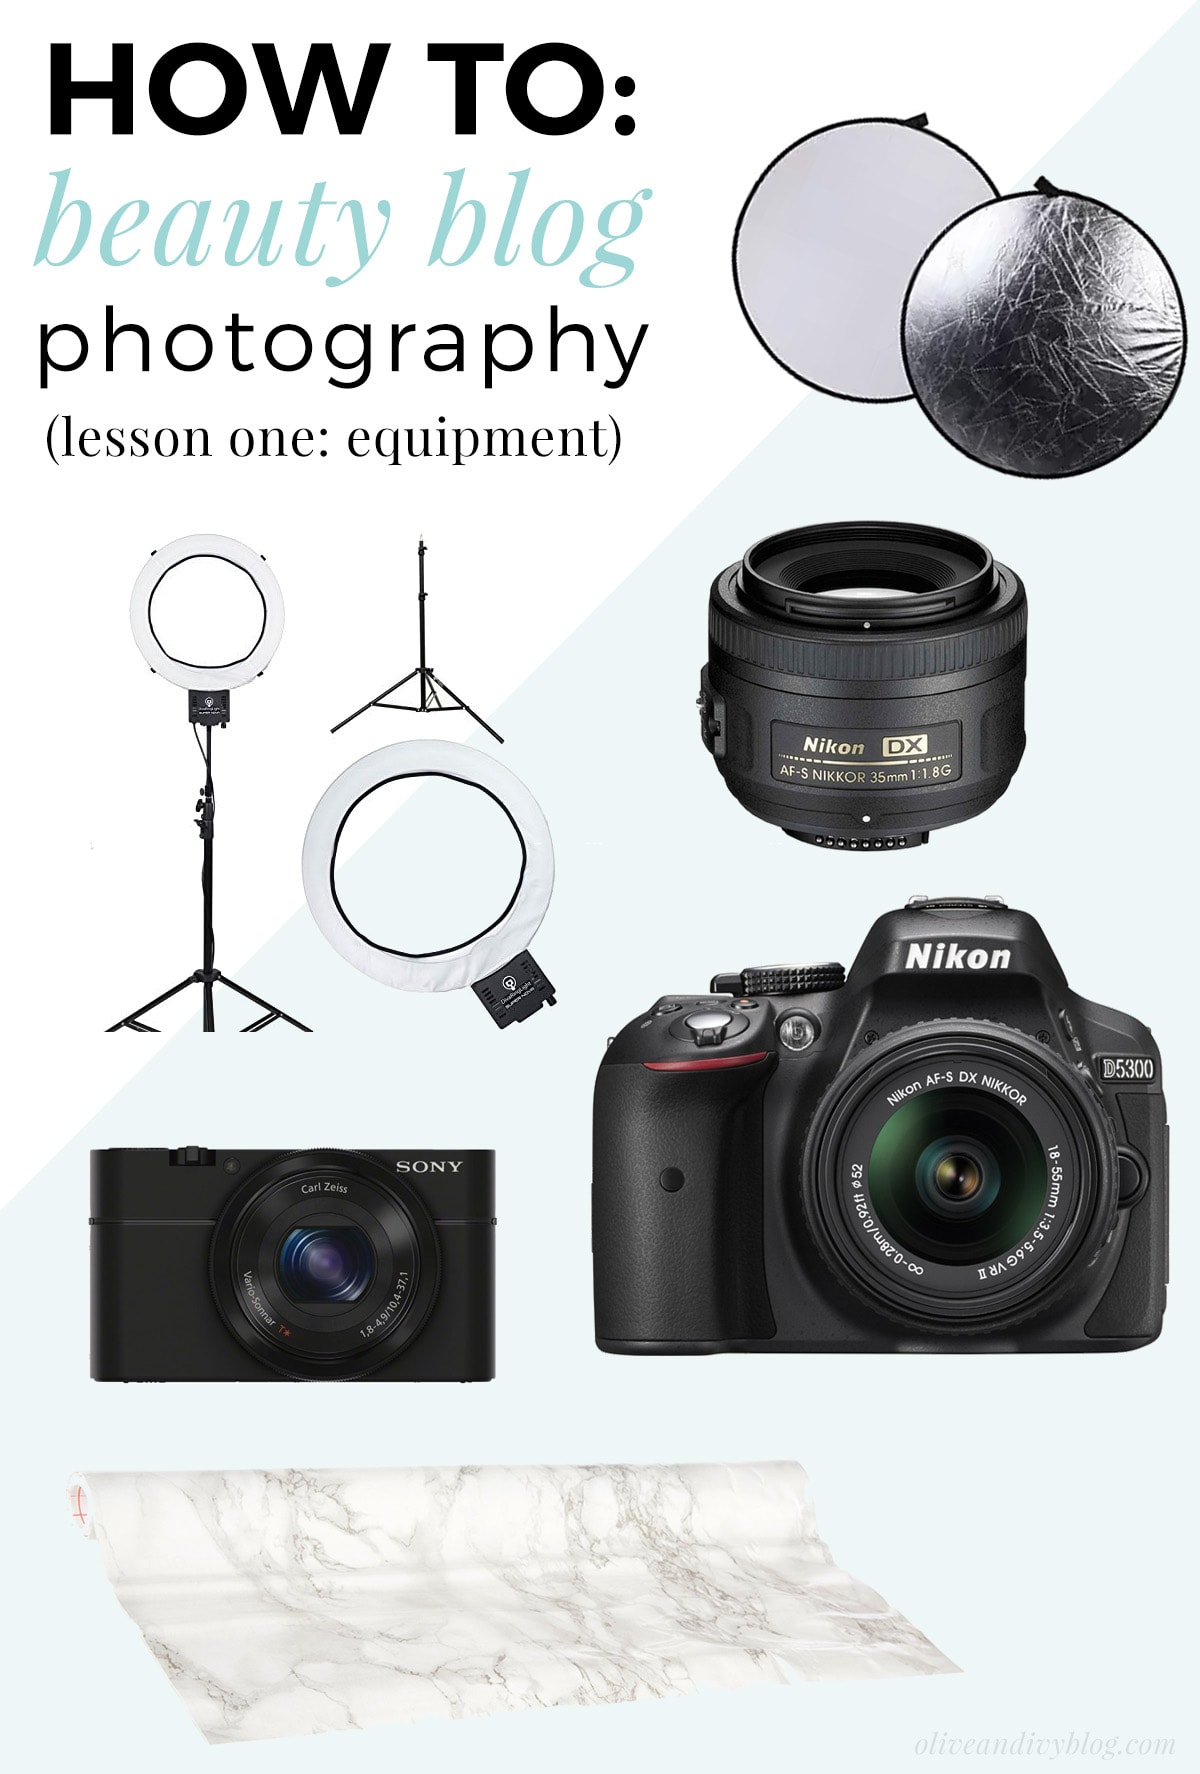 HOW TO: beauty blog photography - lesson one: equipment | oliveandivyblog.com